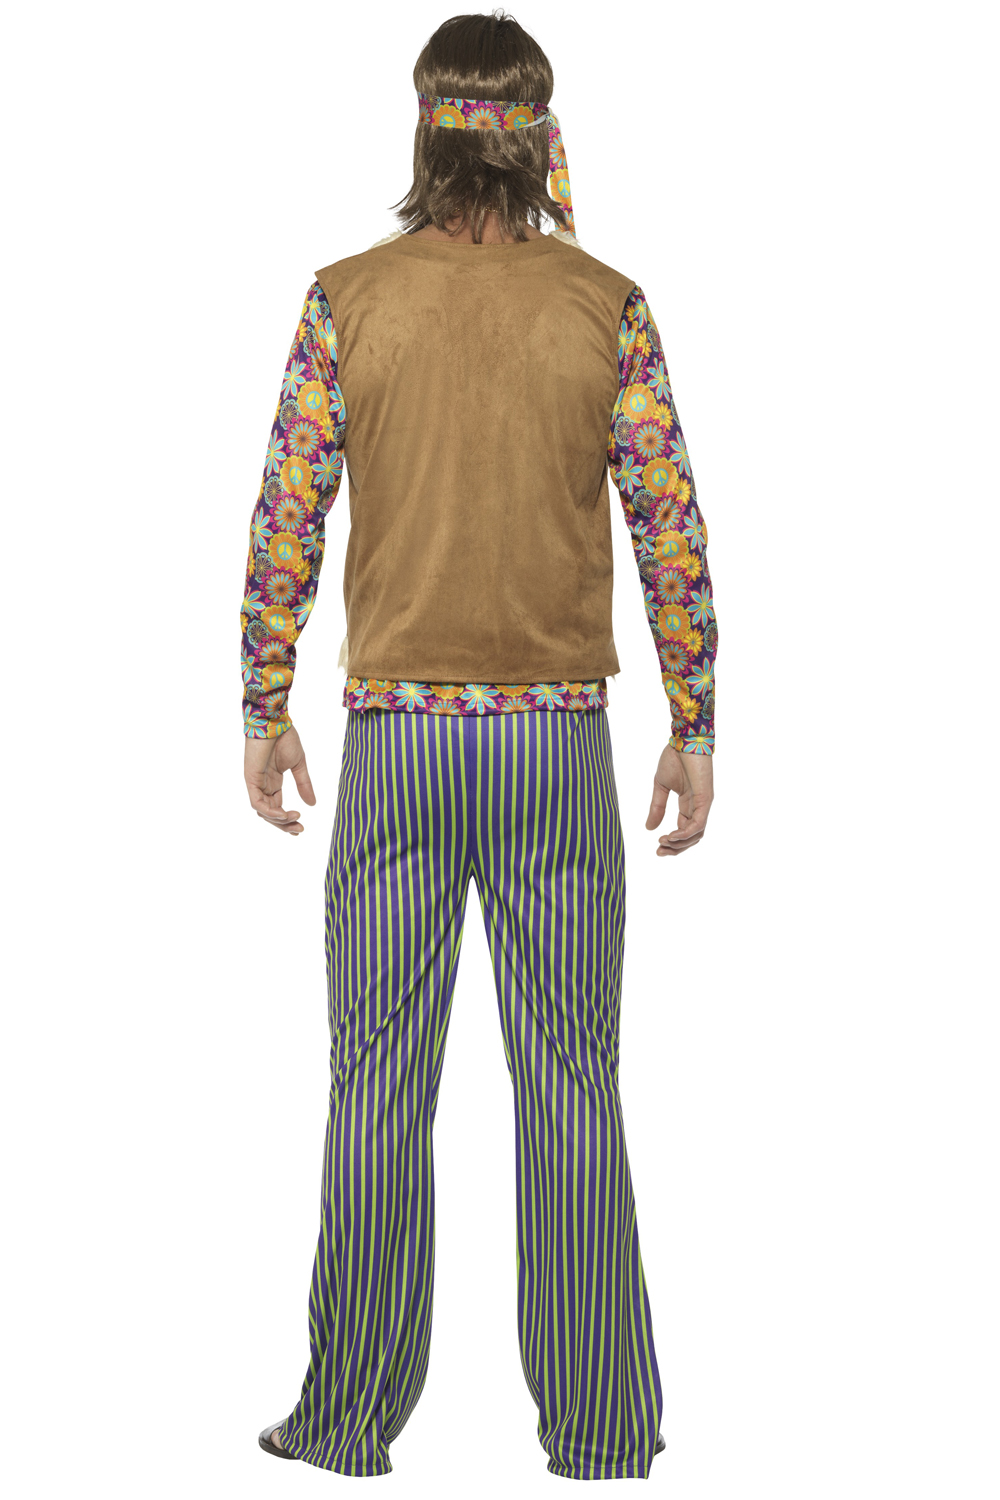 smiffys mens womens hippie singer fancy dress costume 60s groovy party outfit ebay. Black Bedroom Furniture Sets. Home Design Ideas